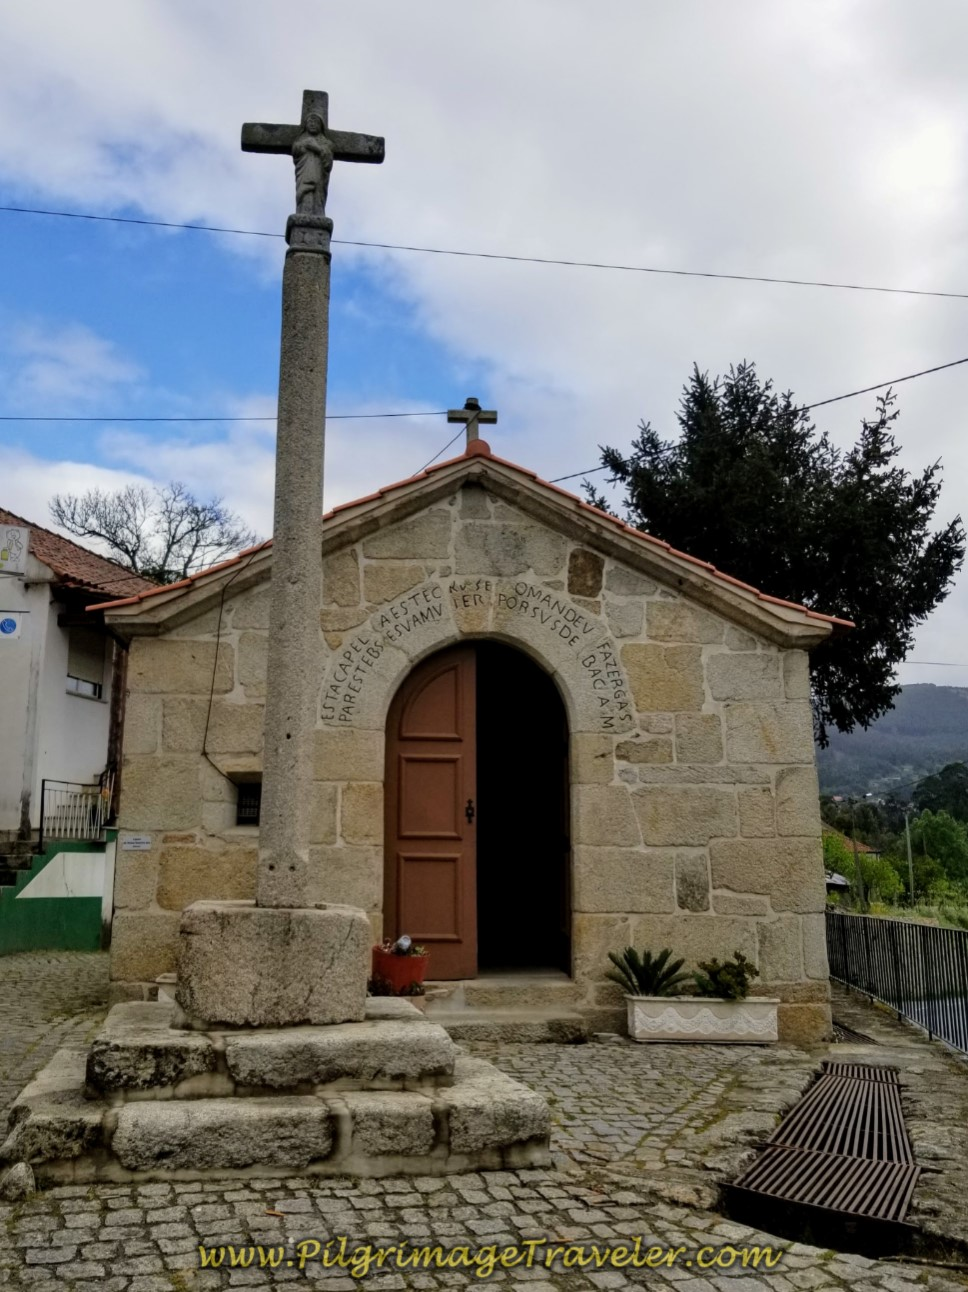 Pilgrim's Chapel in Revolta on day eighteen on the Central Route of the Portuguese Camino